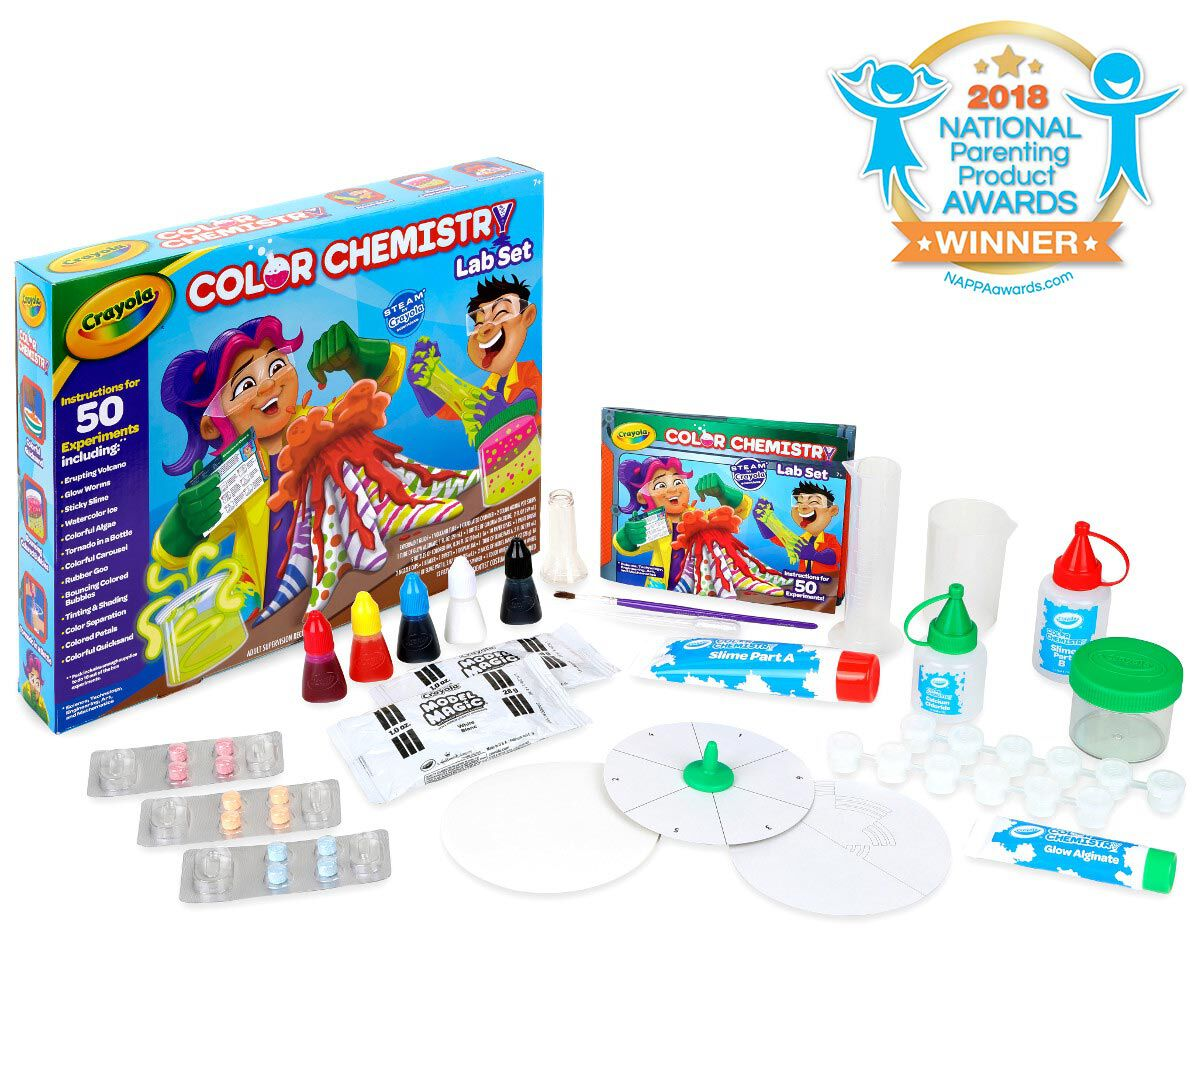 crayola color chemistry set for kids over 50 steam stem activities